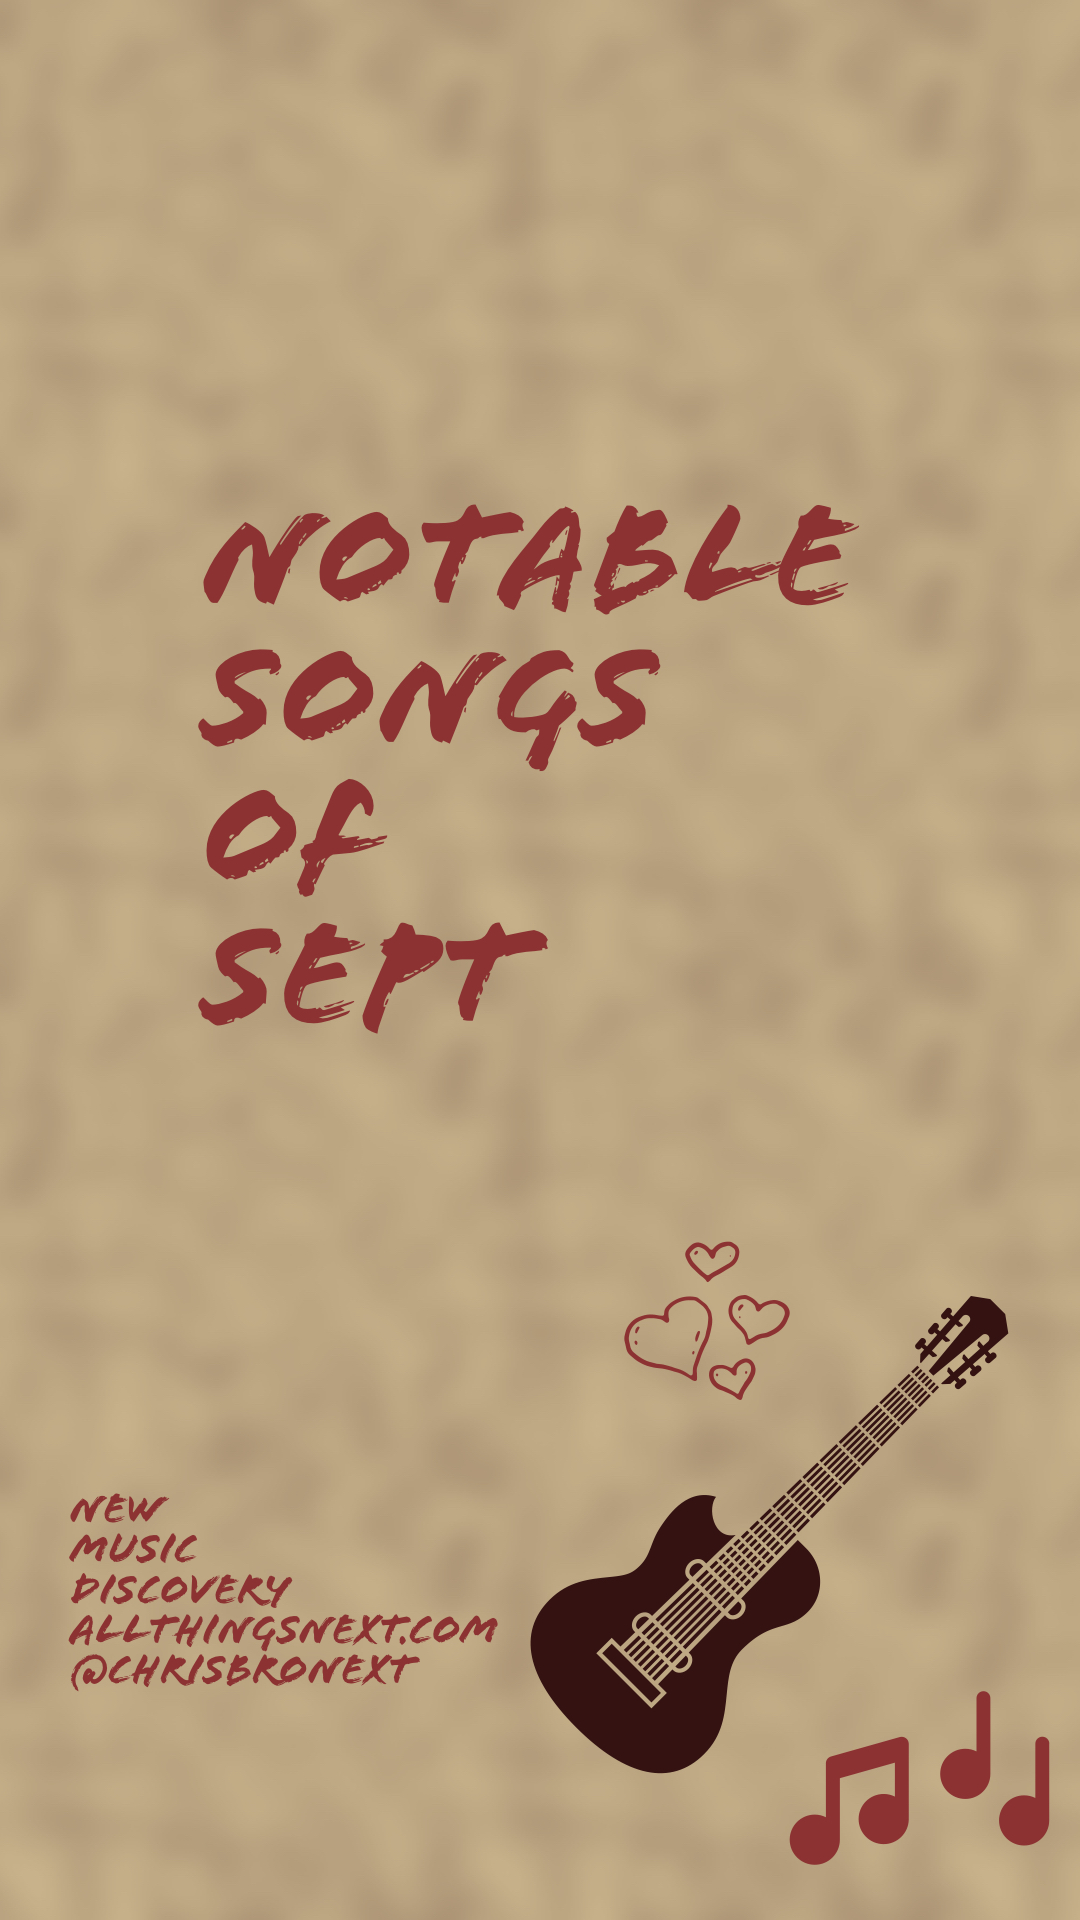 Next Week 700 Our Notable Songs of Sept 2019